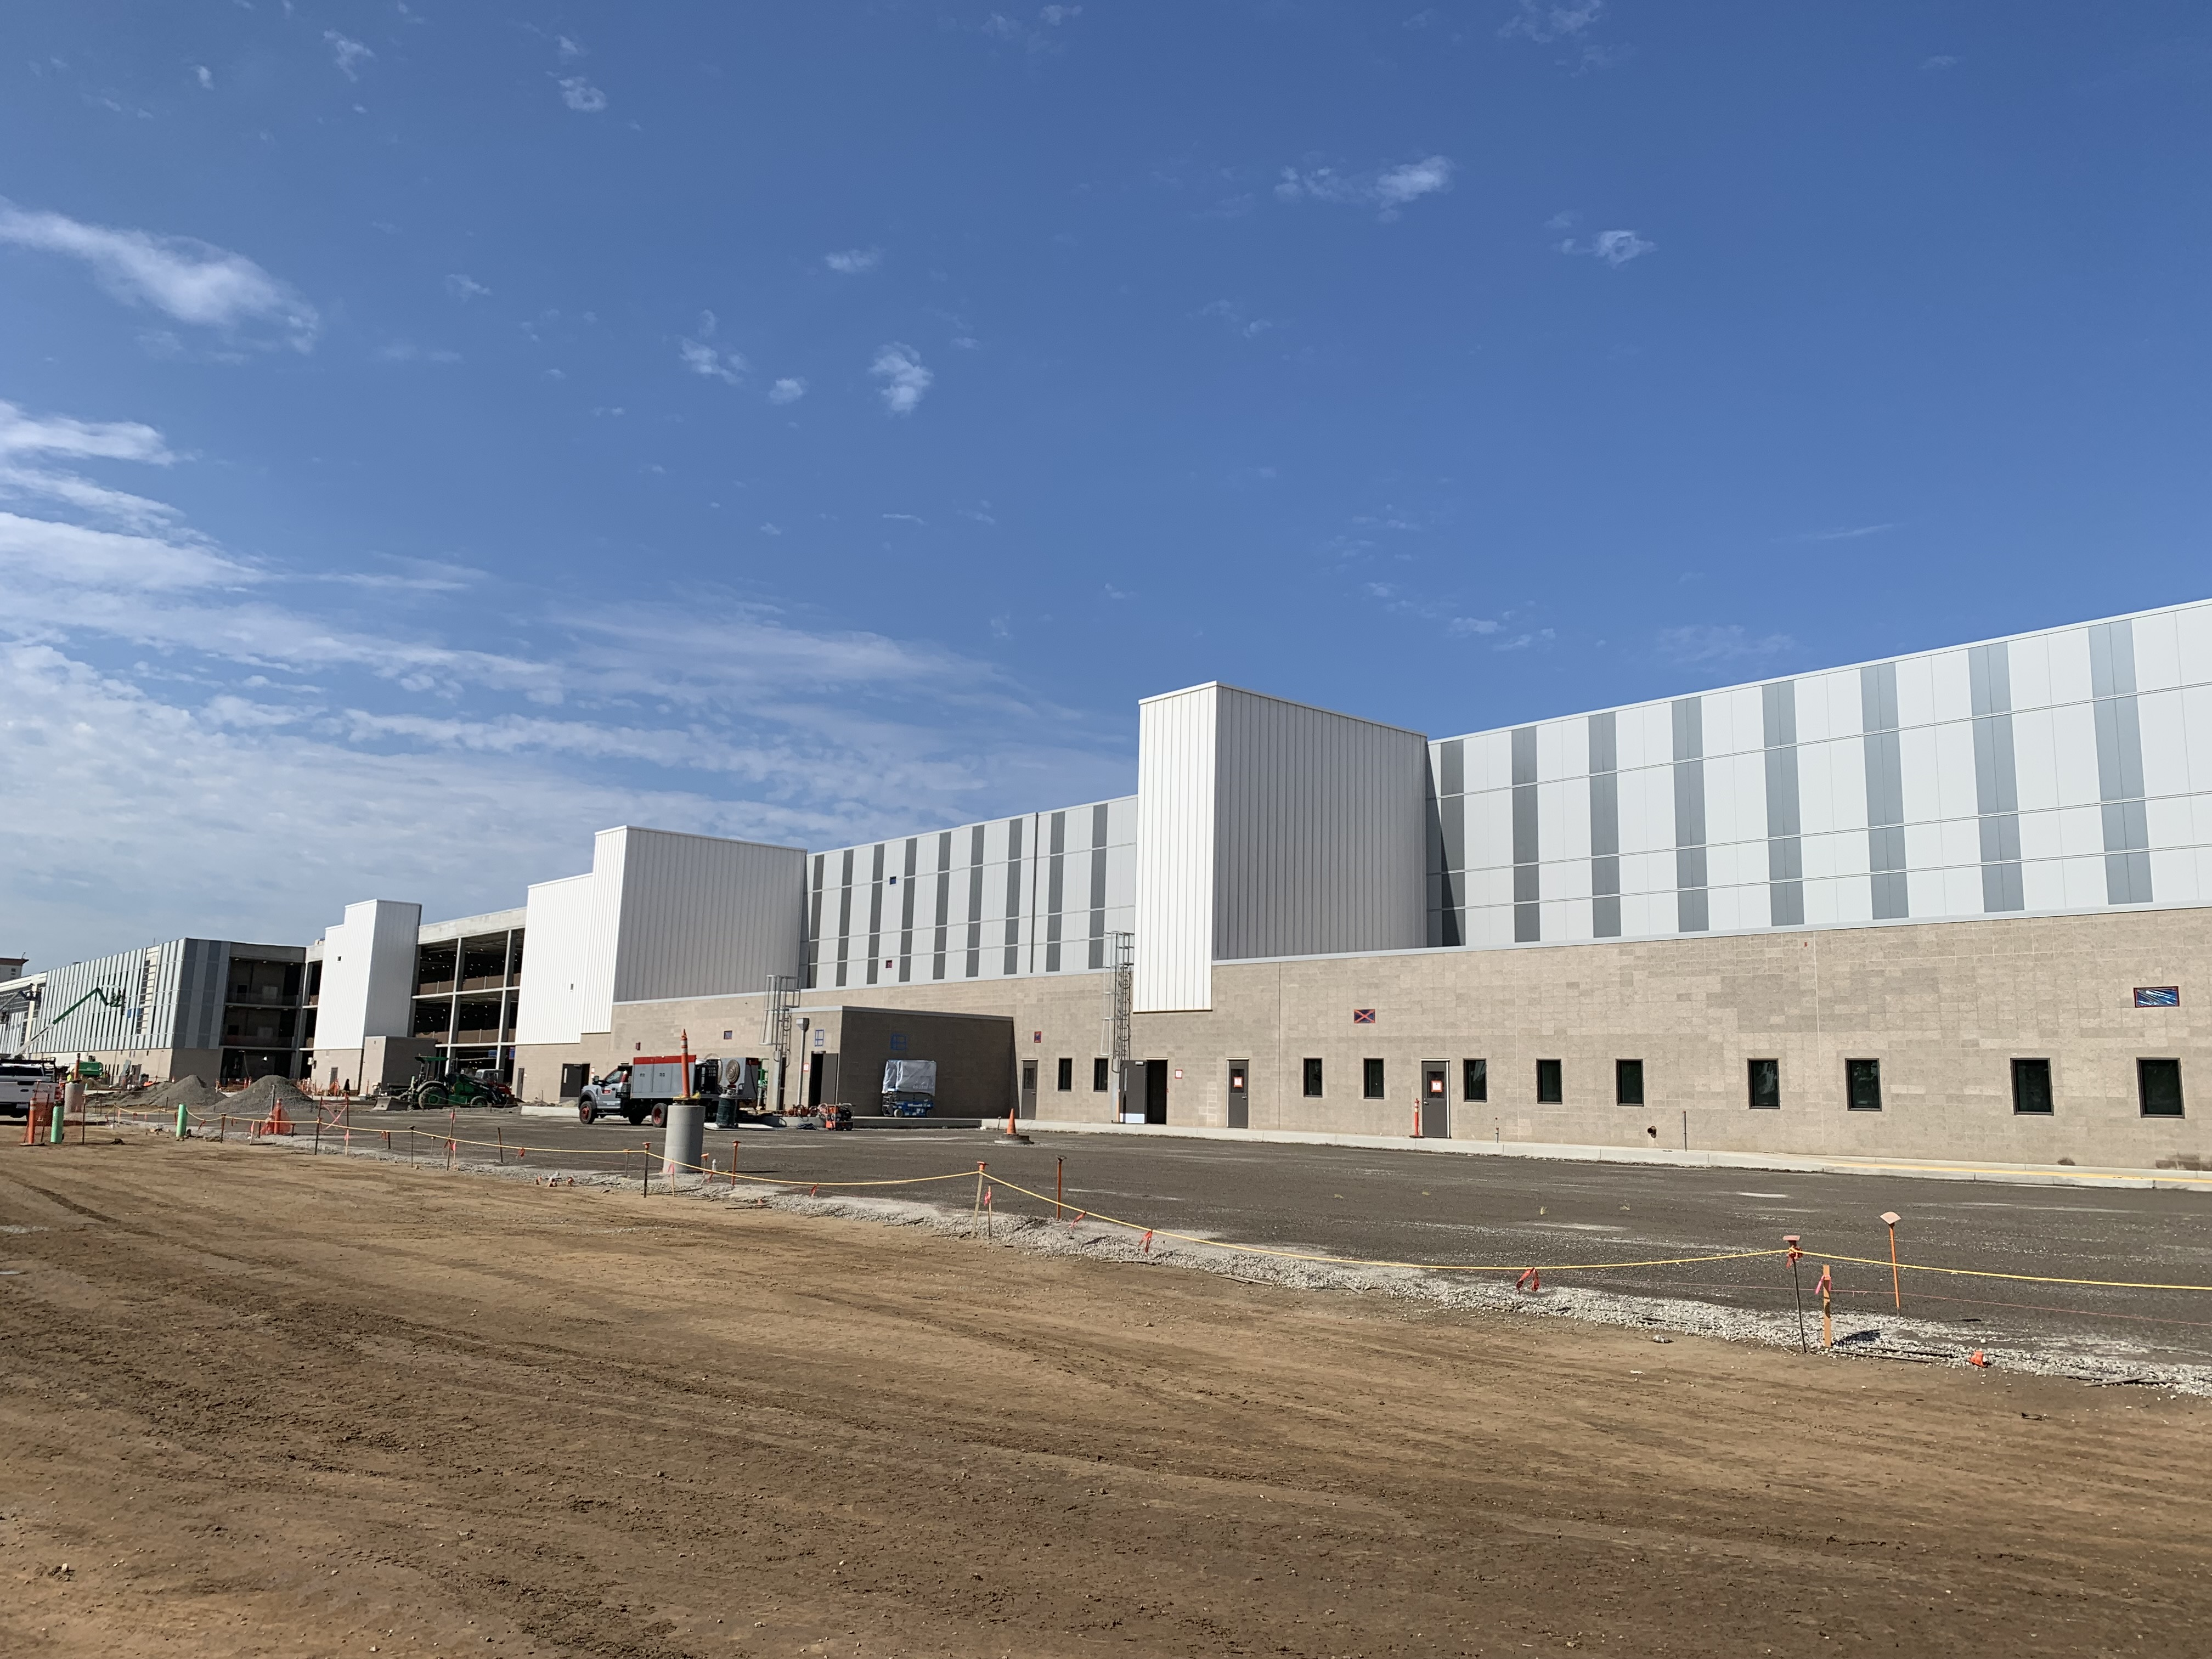 An exterior view of the eastside of the Quick Turn Around building at the Consolidated Rent-A-Car facility.